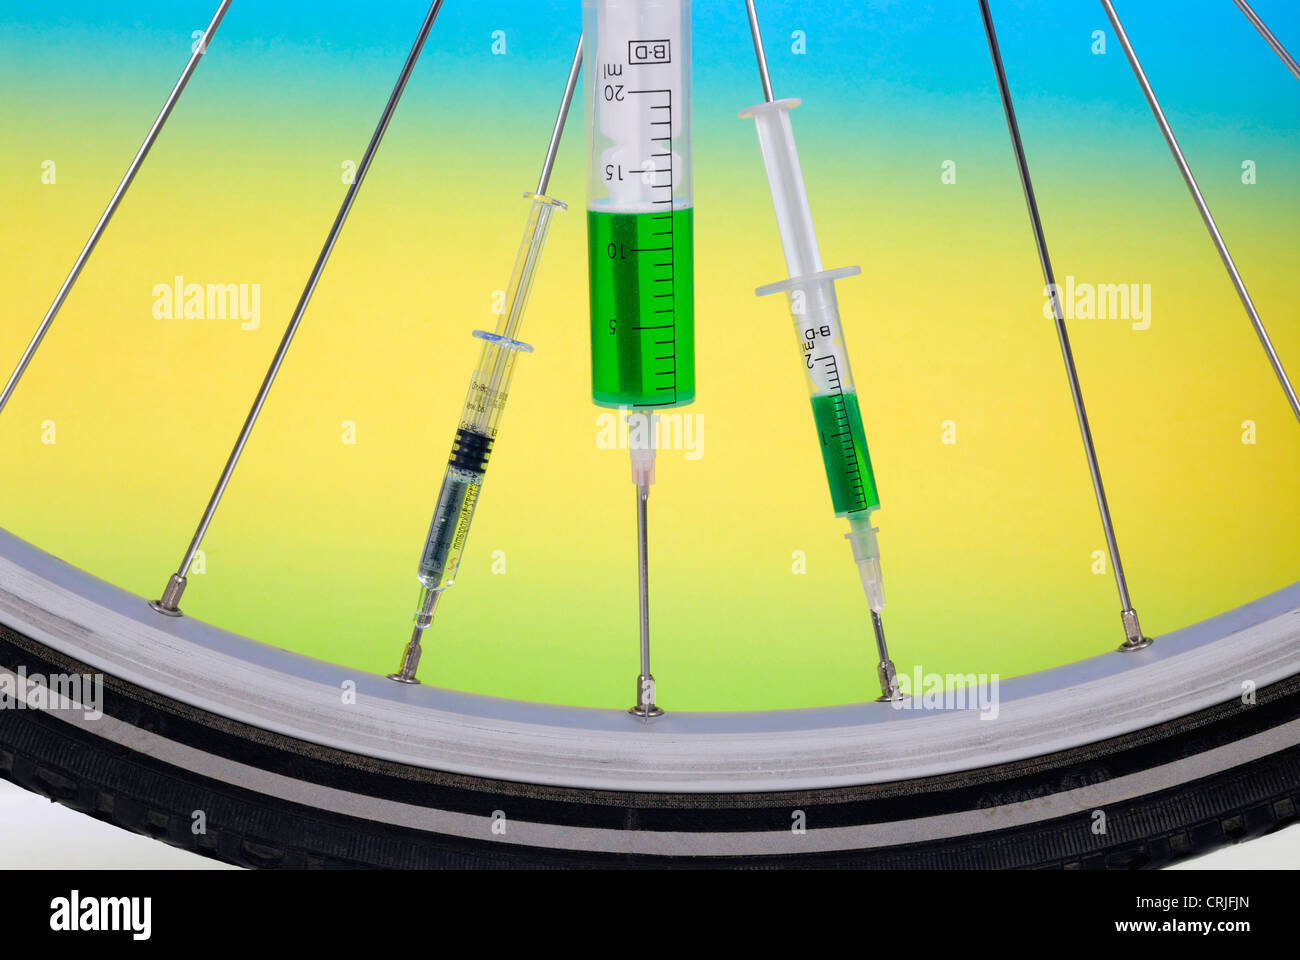 injection in a bike wheel - Stock Image